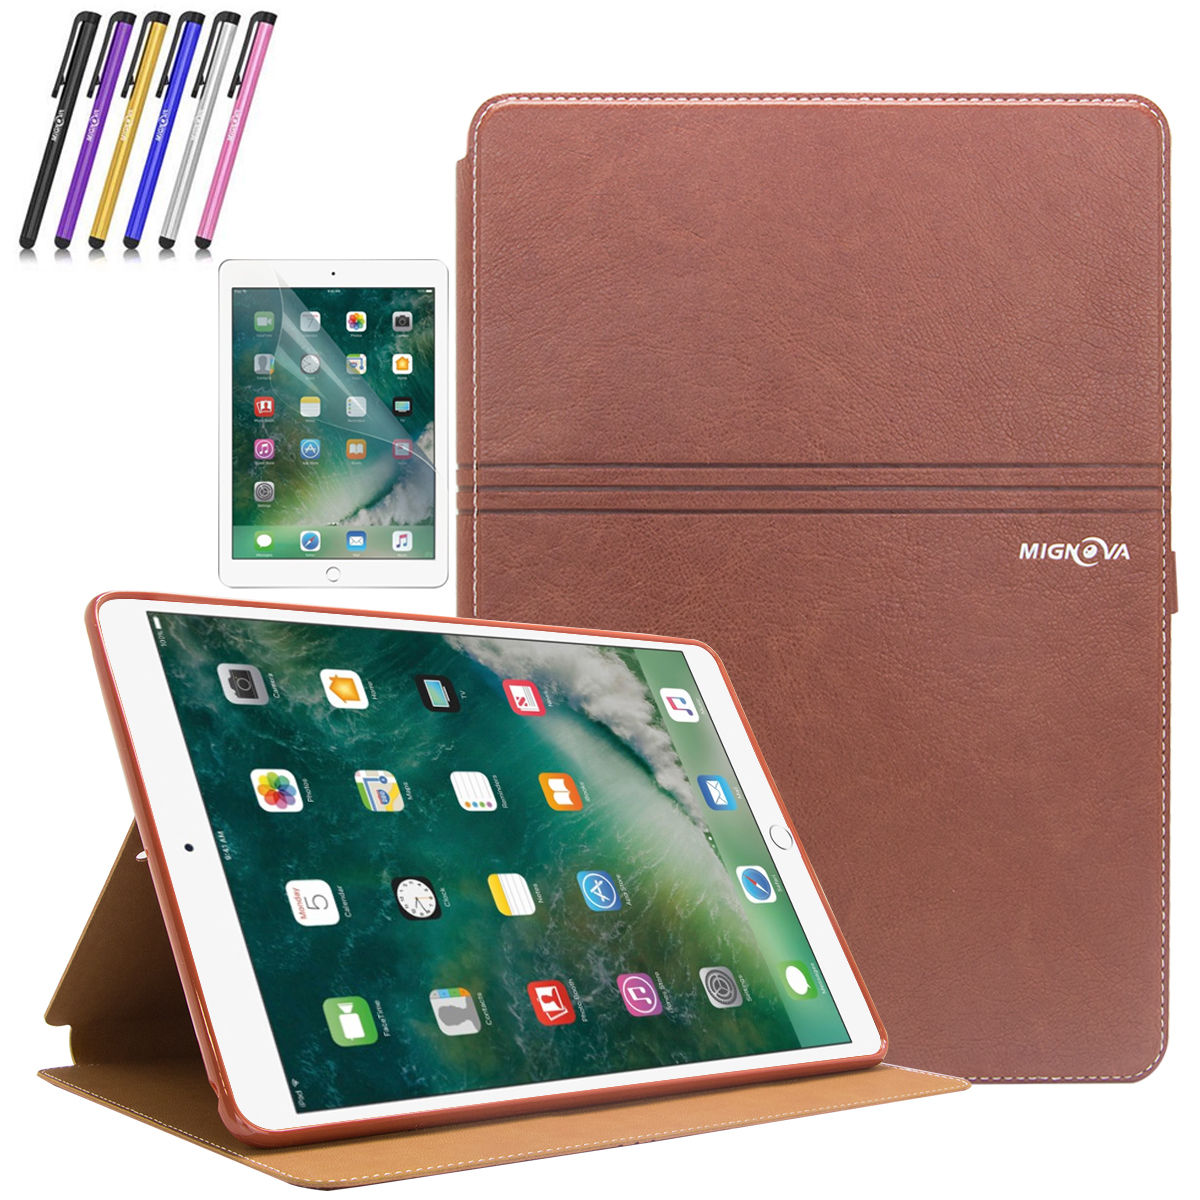 New iPad Pro 10.5 Case, Mignova Synthetic Leather Folio Smart Cover with Auto Sleep / Wake for Apple iPad Pro 10.5 inch 2017 Release A1701 / A1709 + Screen Protector Film and Stylus Pen (Black)